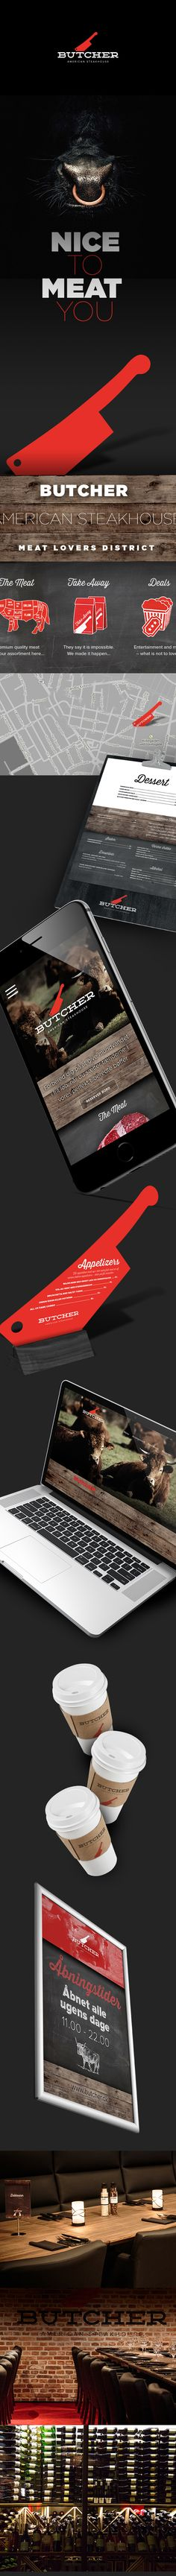 Butcher - American Steakhouse on Behance